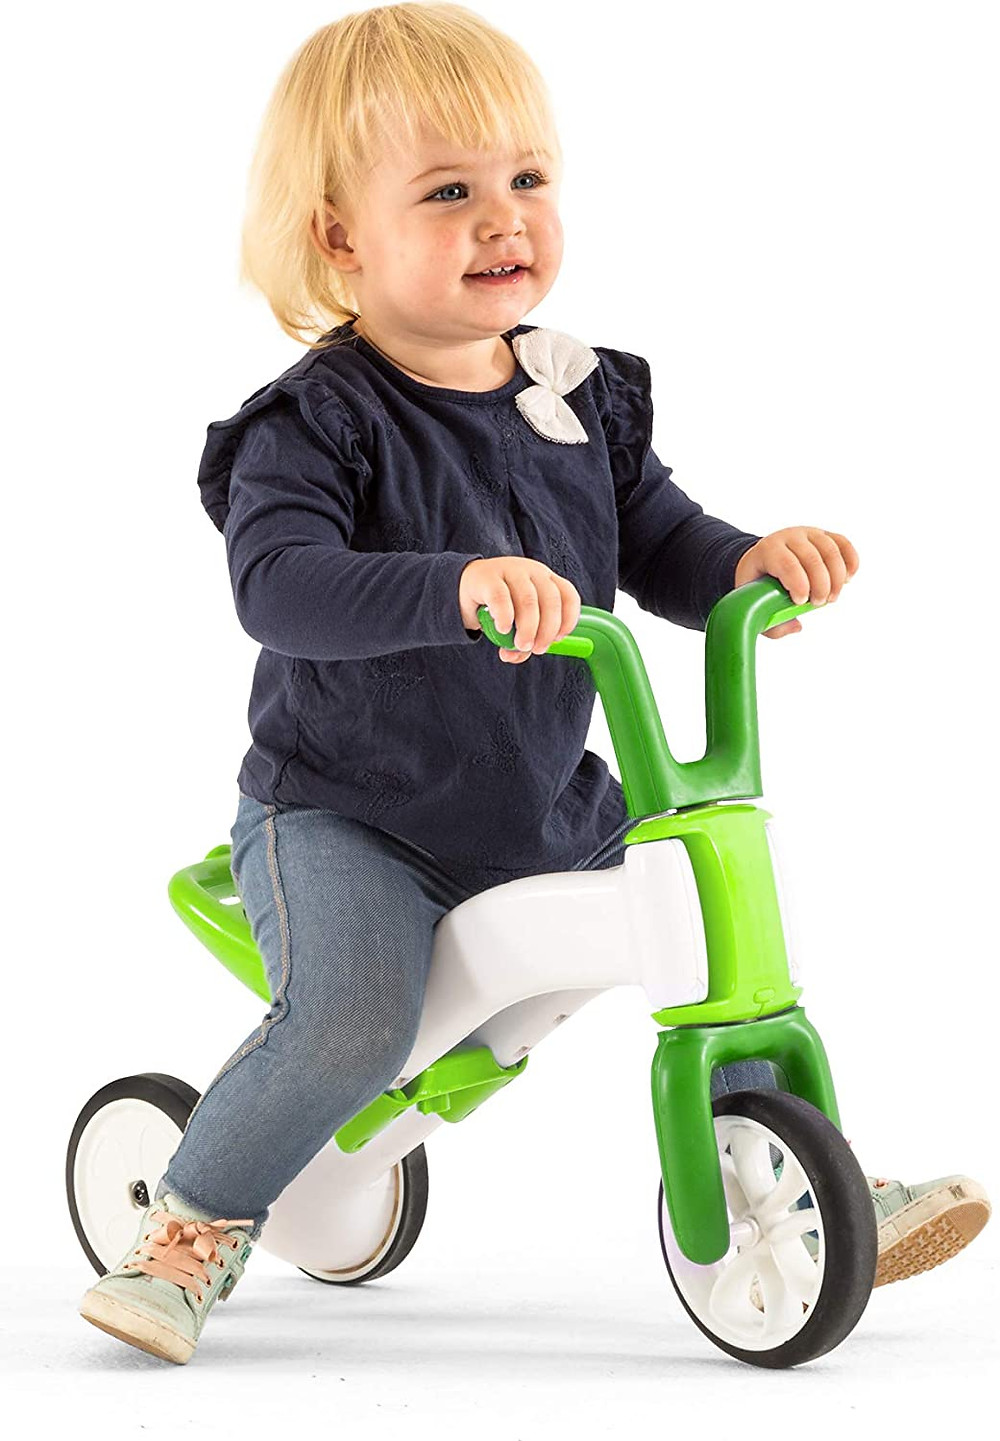 Toddler girl smiling and riding green balance bike